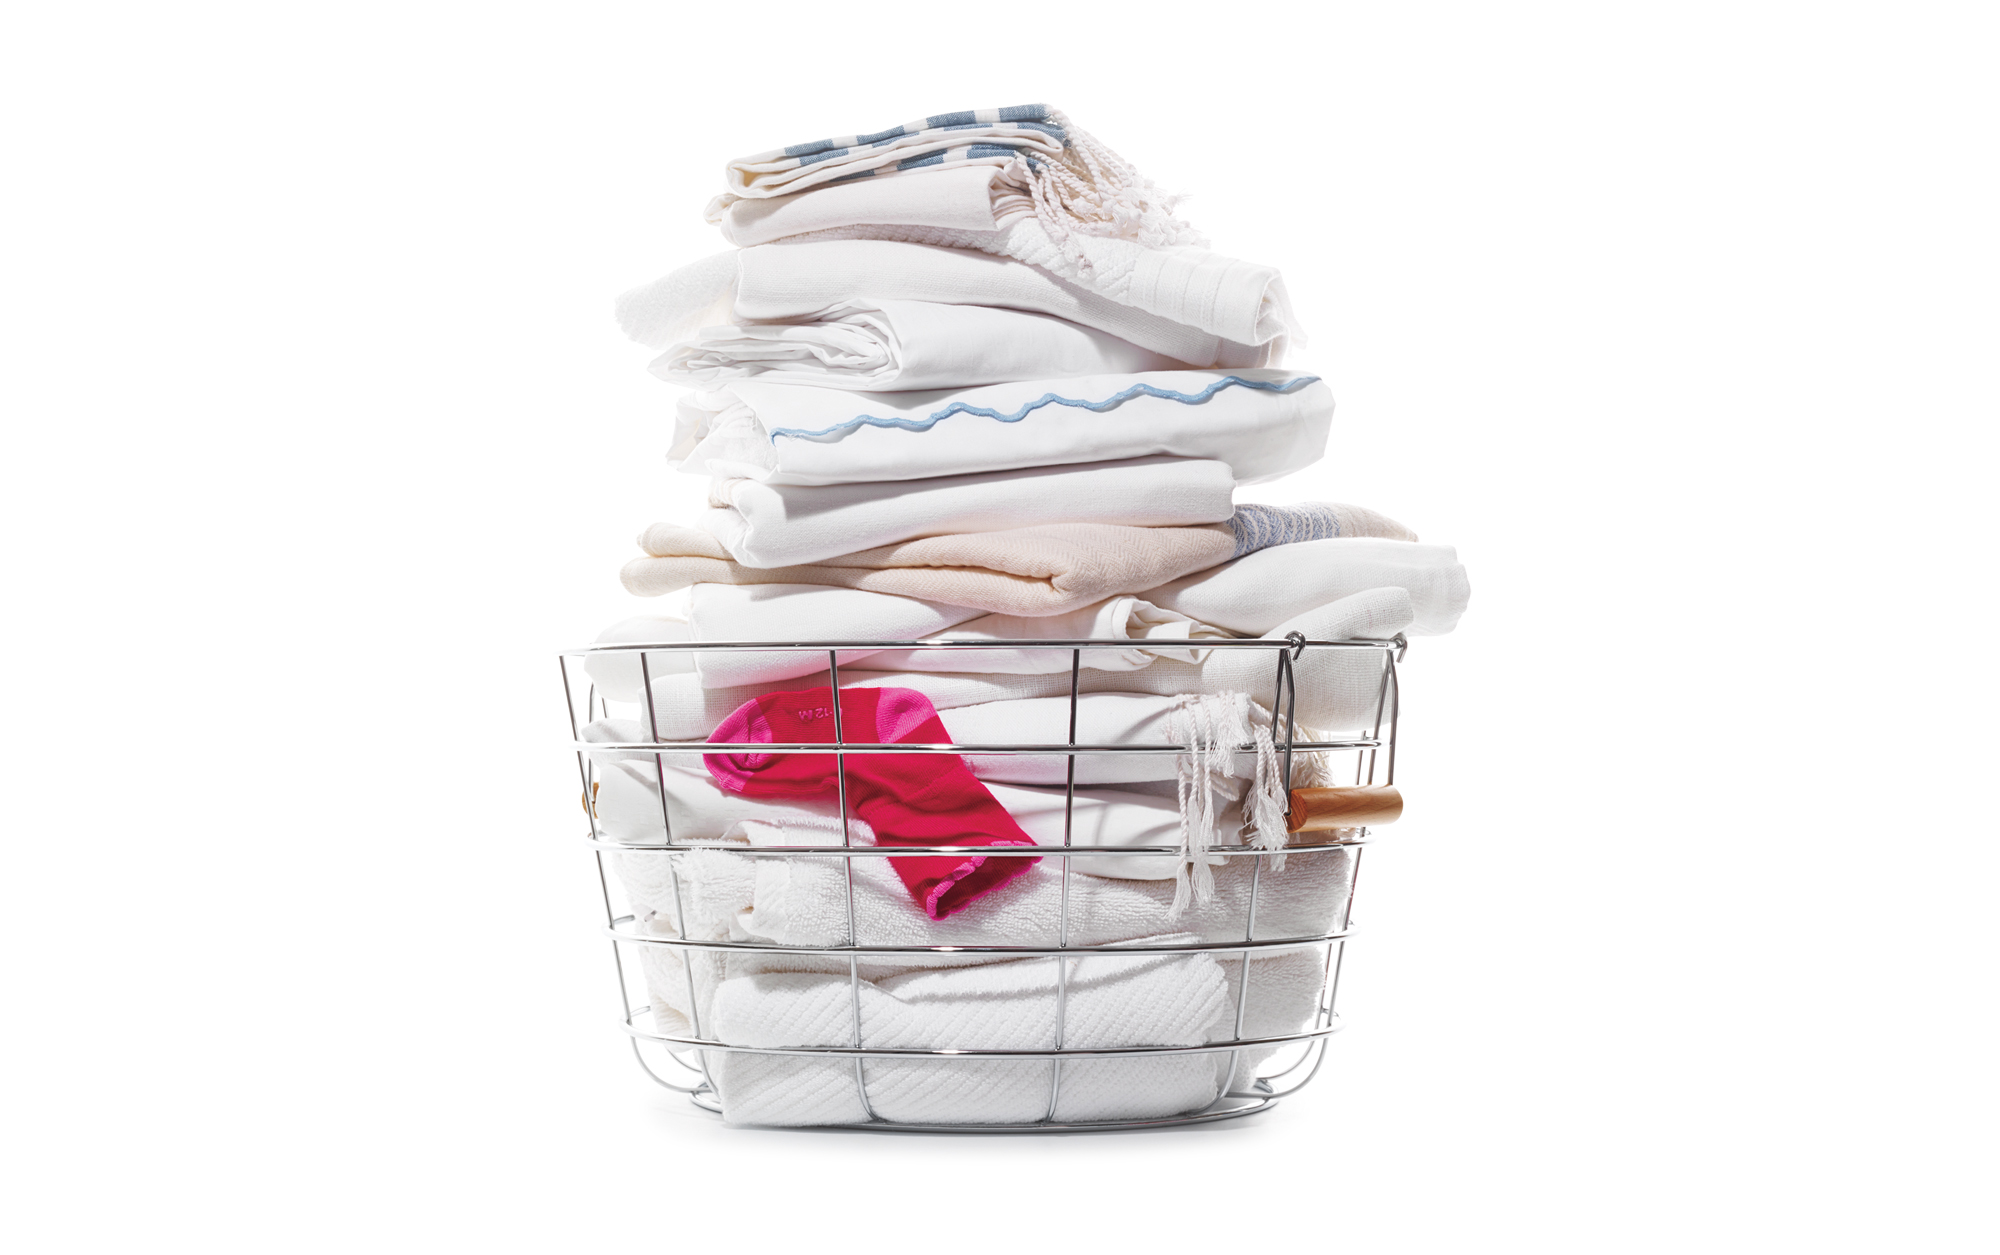 Basket full of folded laundry